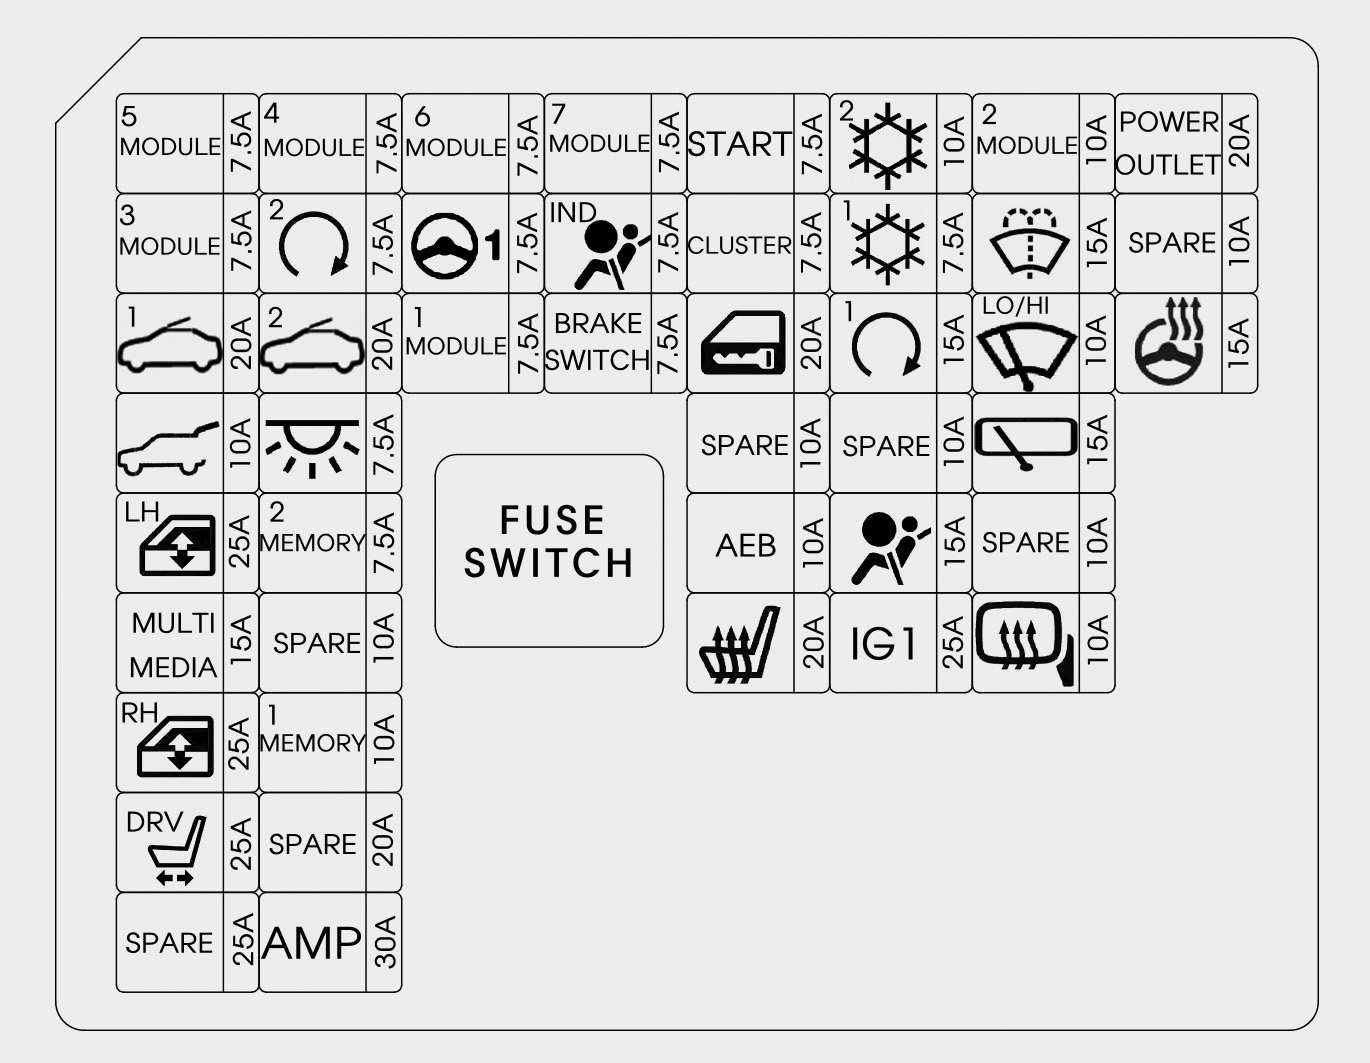 hyundai getz fuse box location wiring diagram z4hyundai fuse box diagram wiring diagram schema hyundai getz 2002 fuse box diagram hyundai getz fuse box location